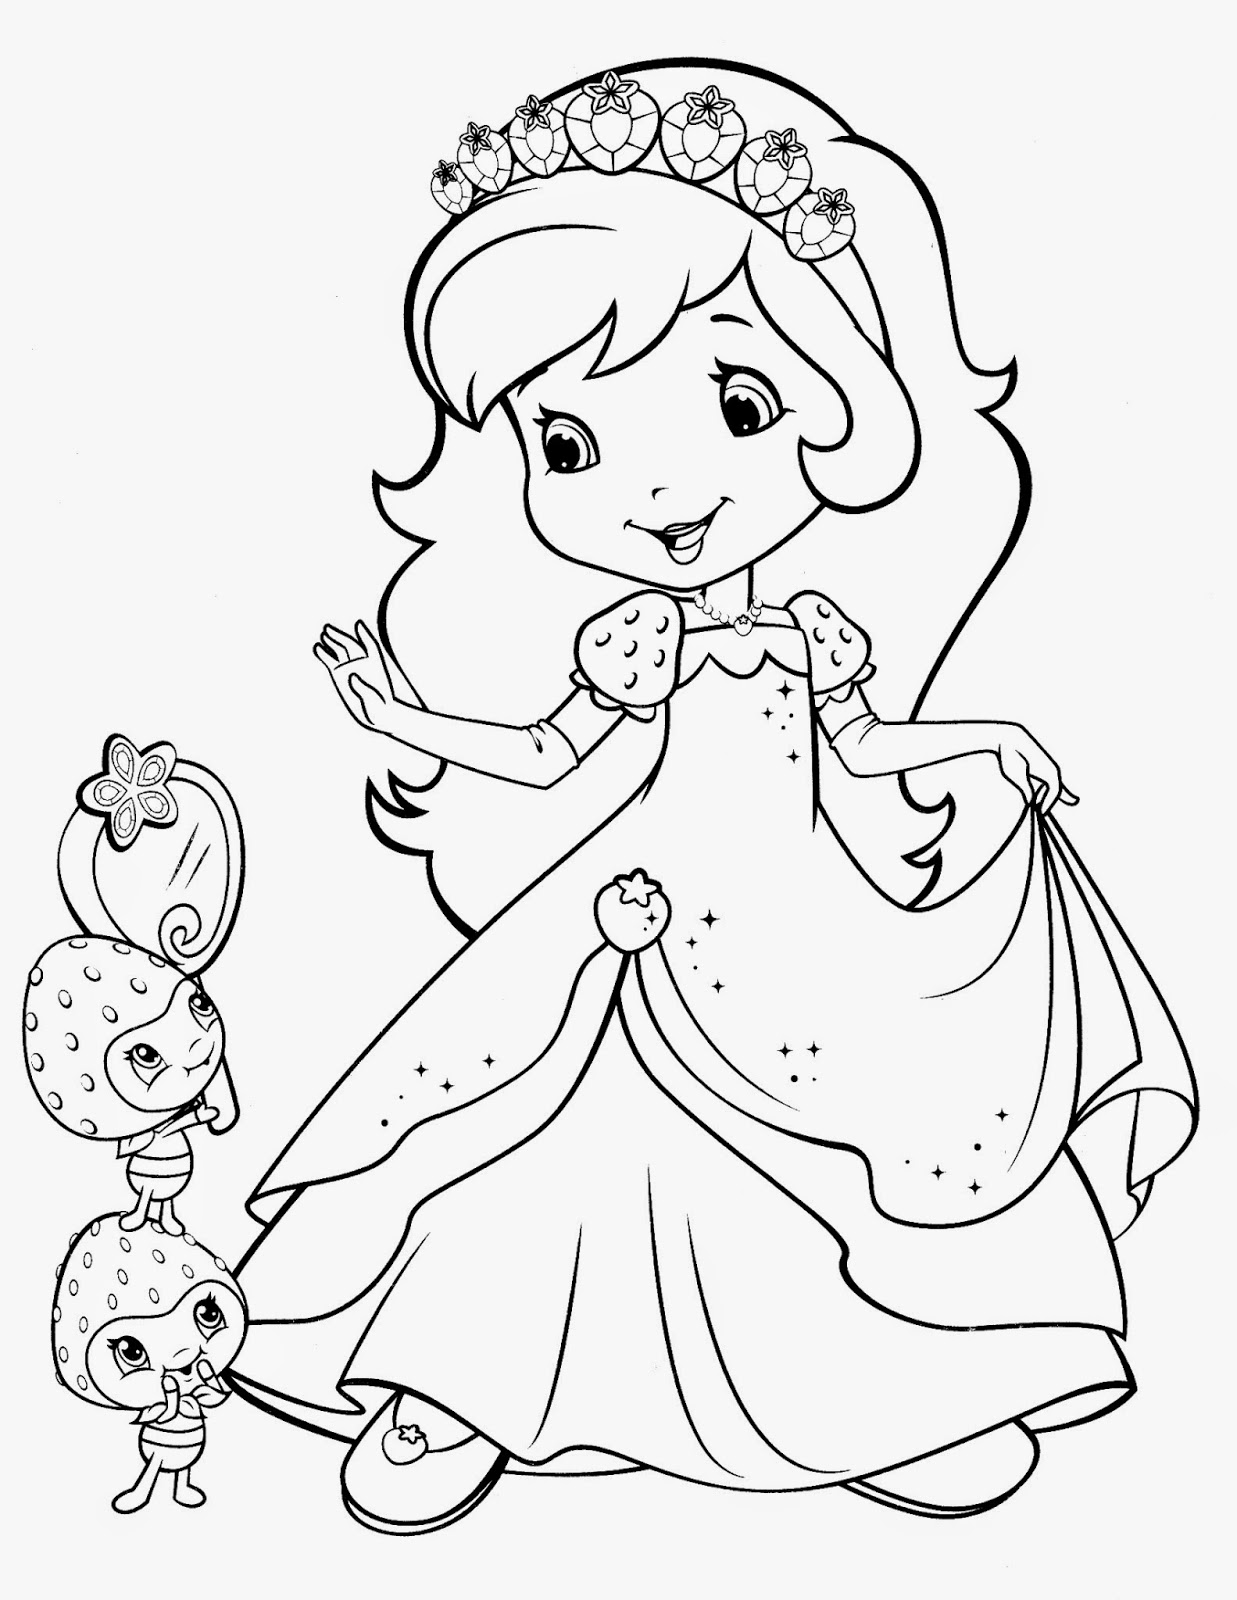 Coloring Pages Of Strawberry Shortcake And Friends - Eskayalitim